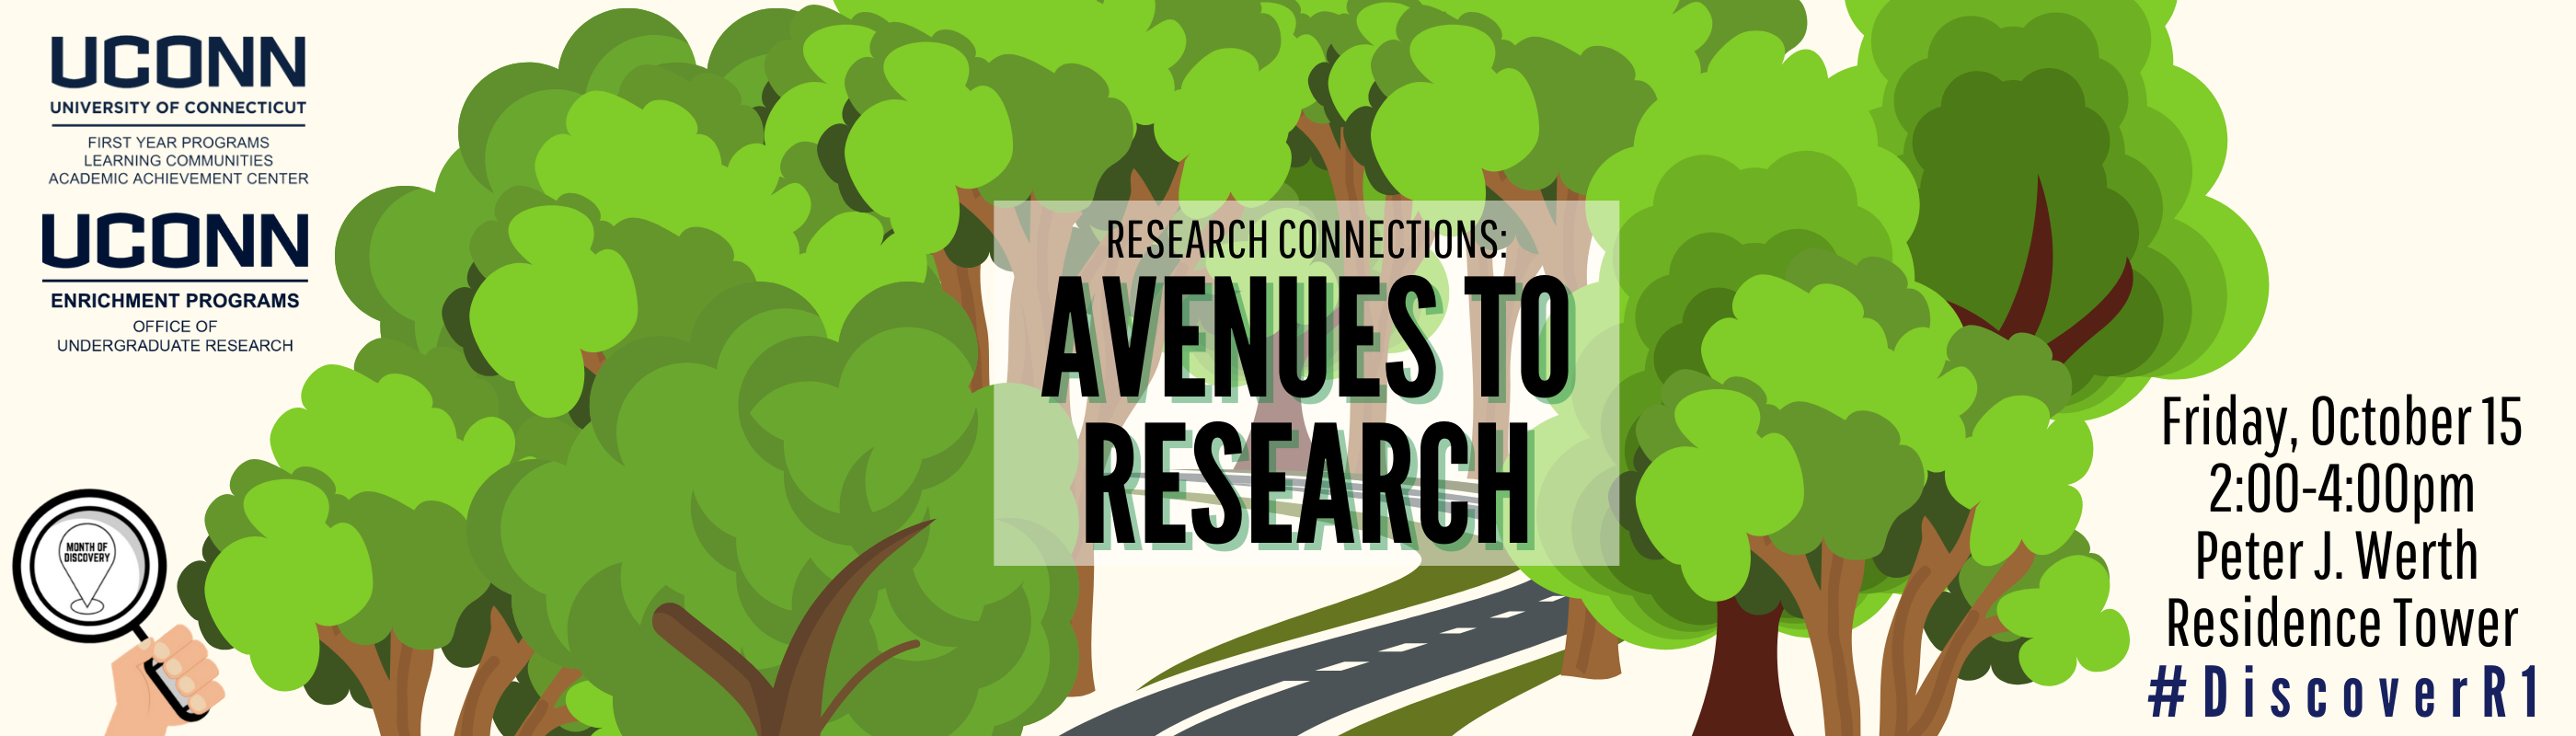 Research Connections October 15 2-4pm Peter J. Werth Residence Tower